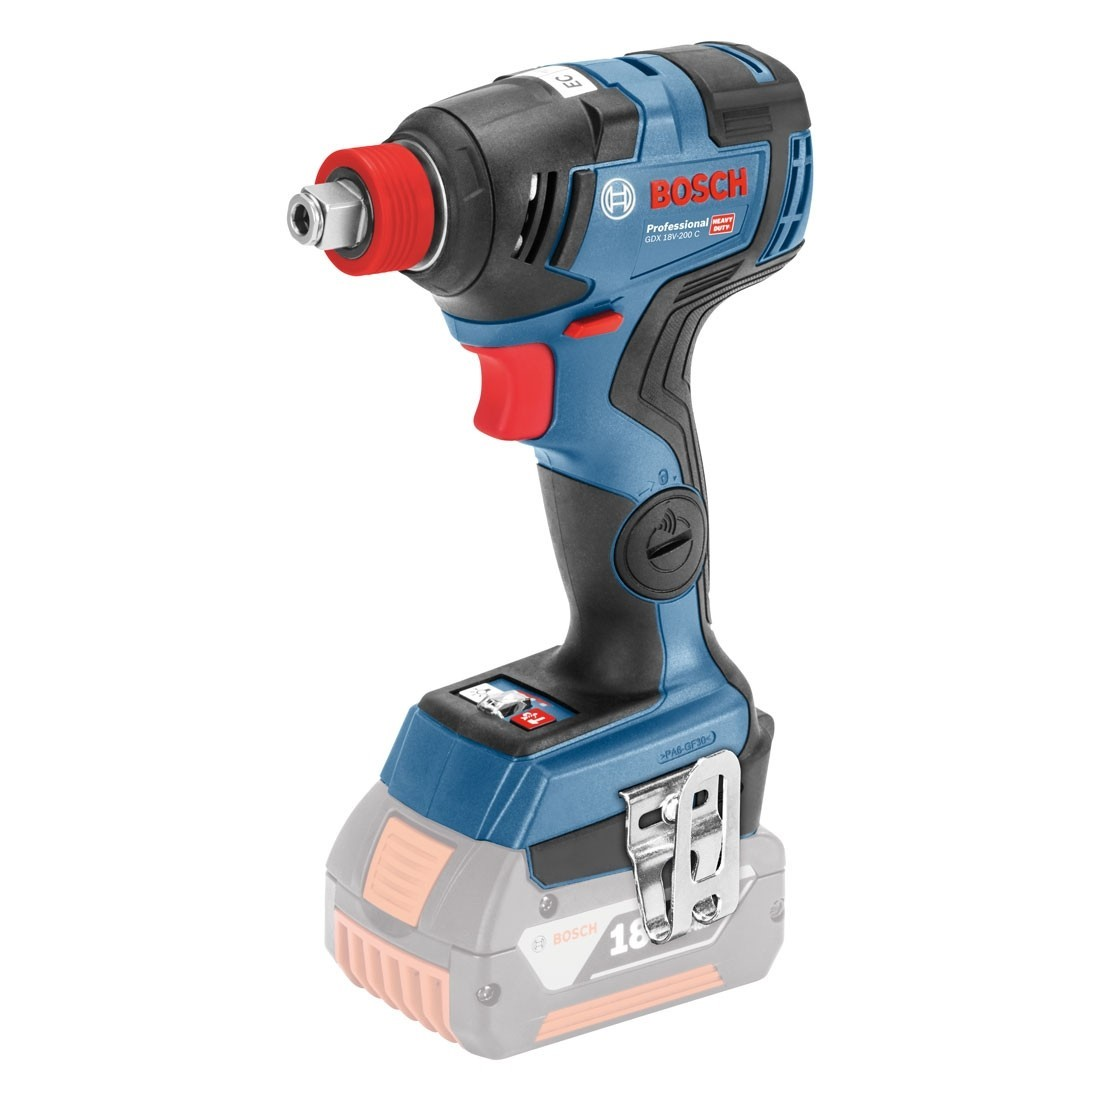 Bosch GDX18 V-200 C 18v Impact Driver//Wrench Body Only in Carton.!